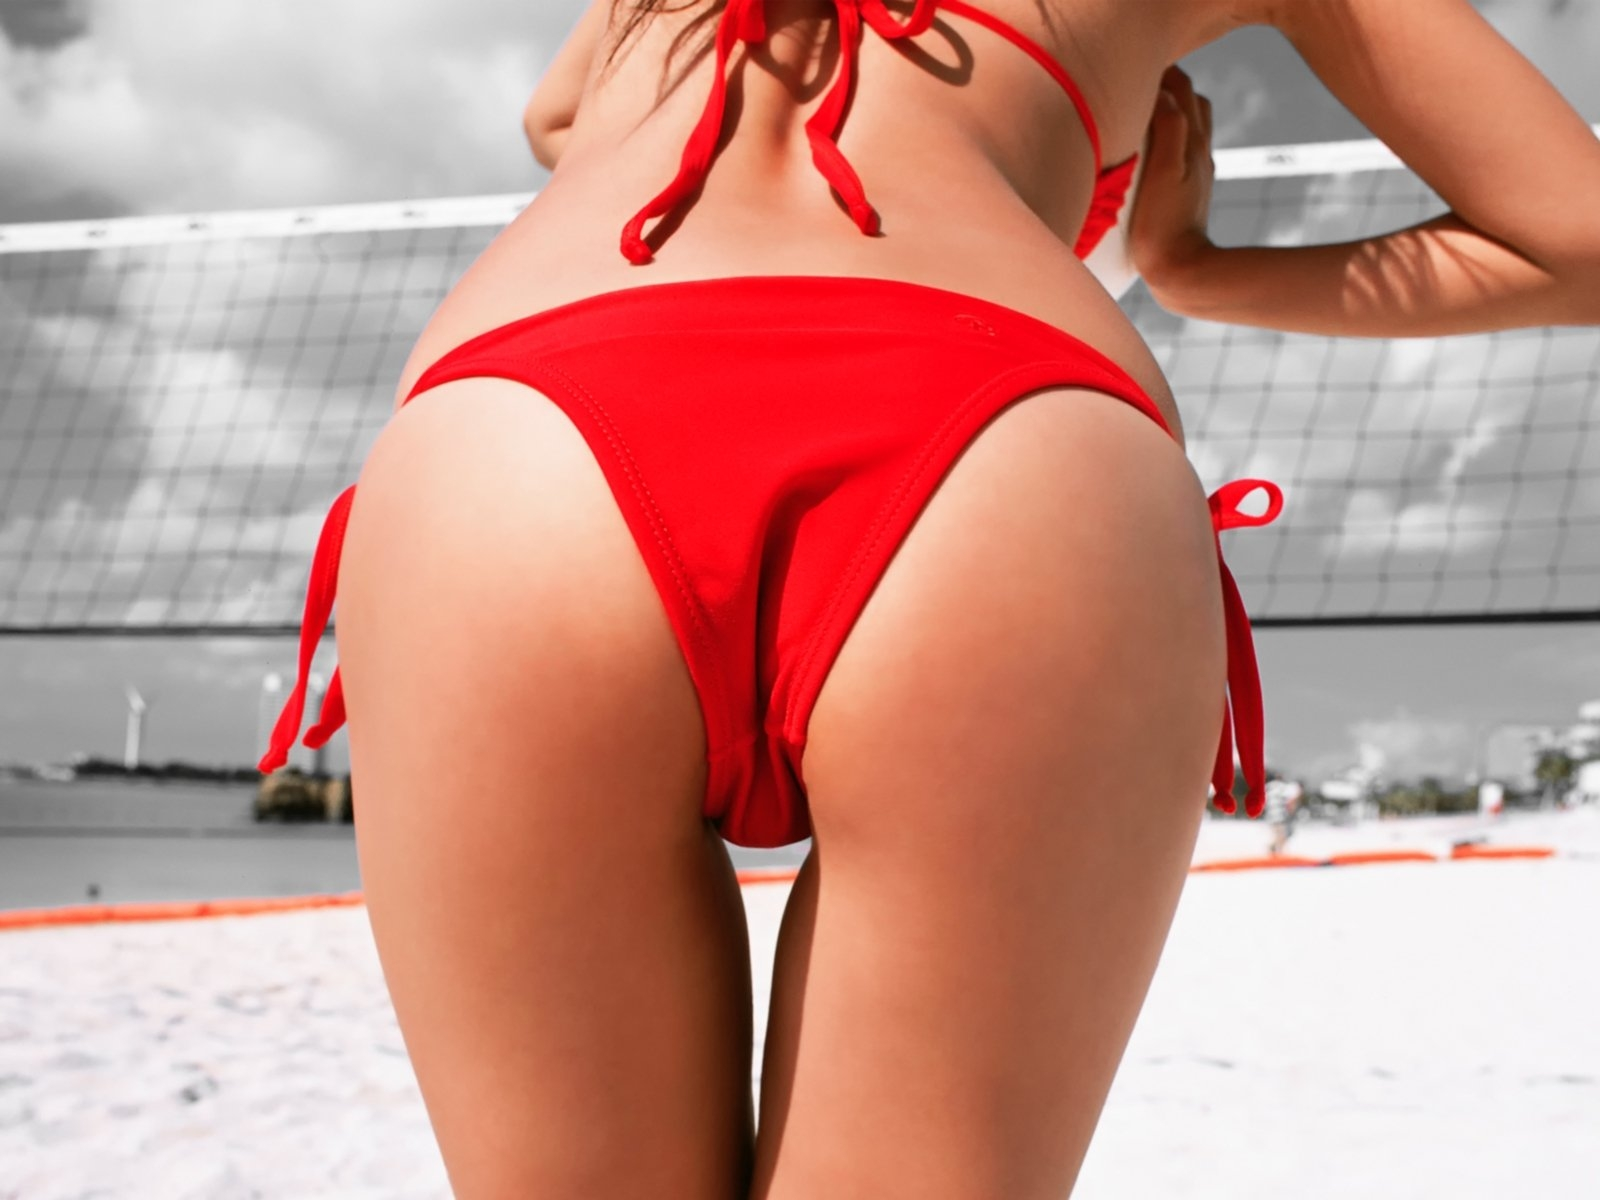 Фото Girl in red bikini, nice ass, red panties, san, net, volleyball, summer, erotic, скачать картинку бесплатно